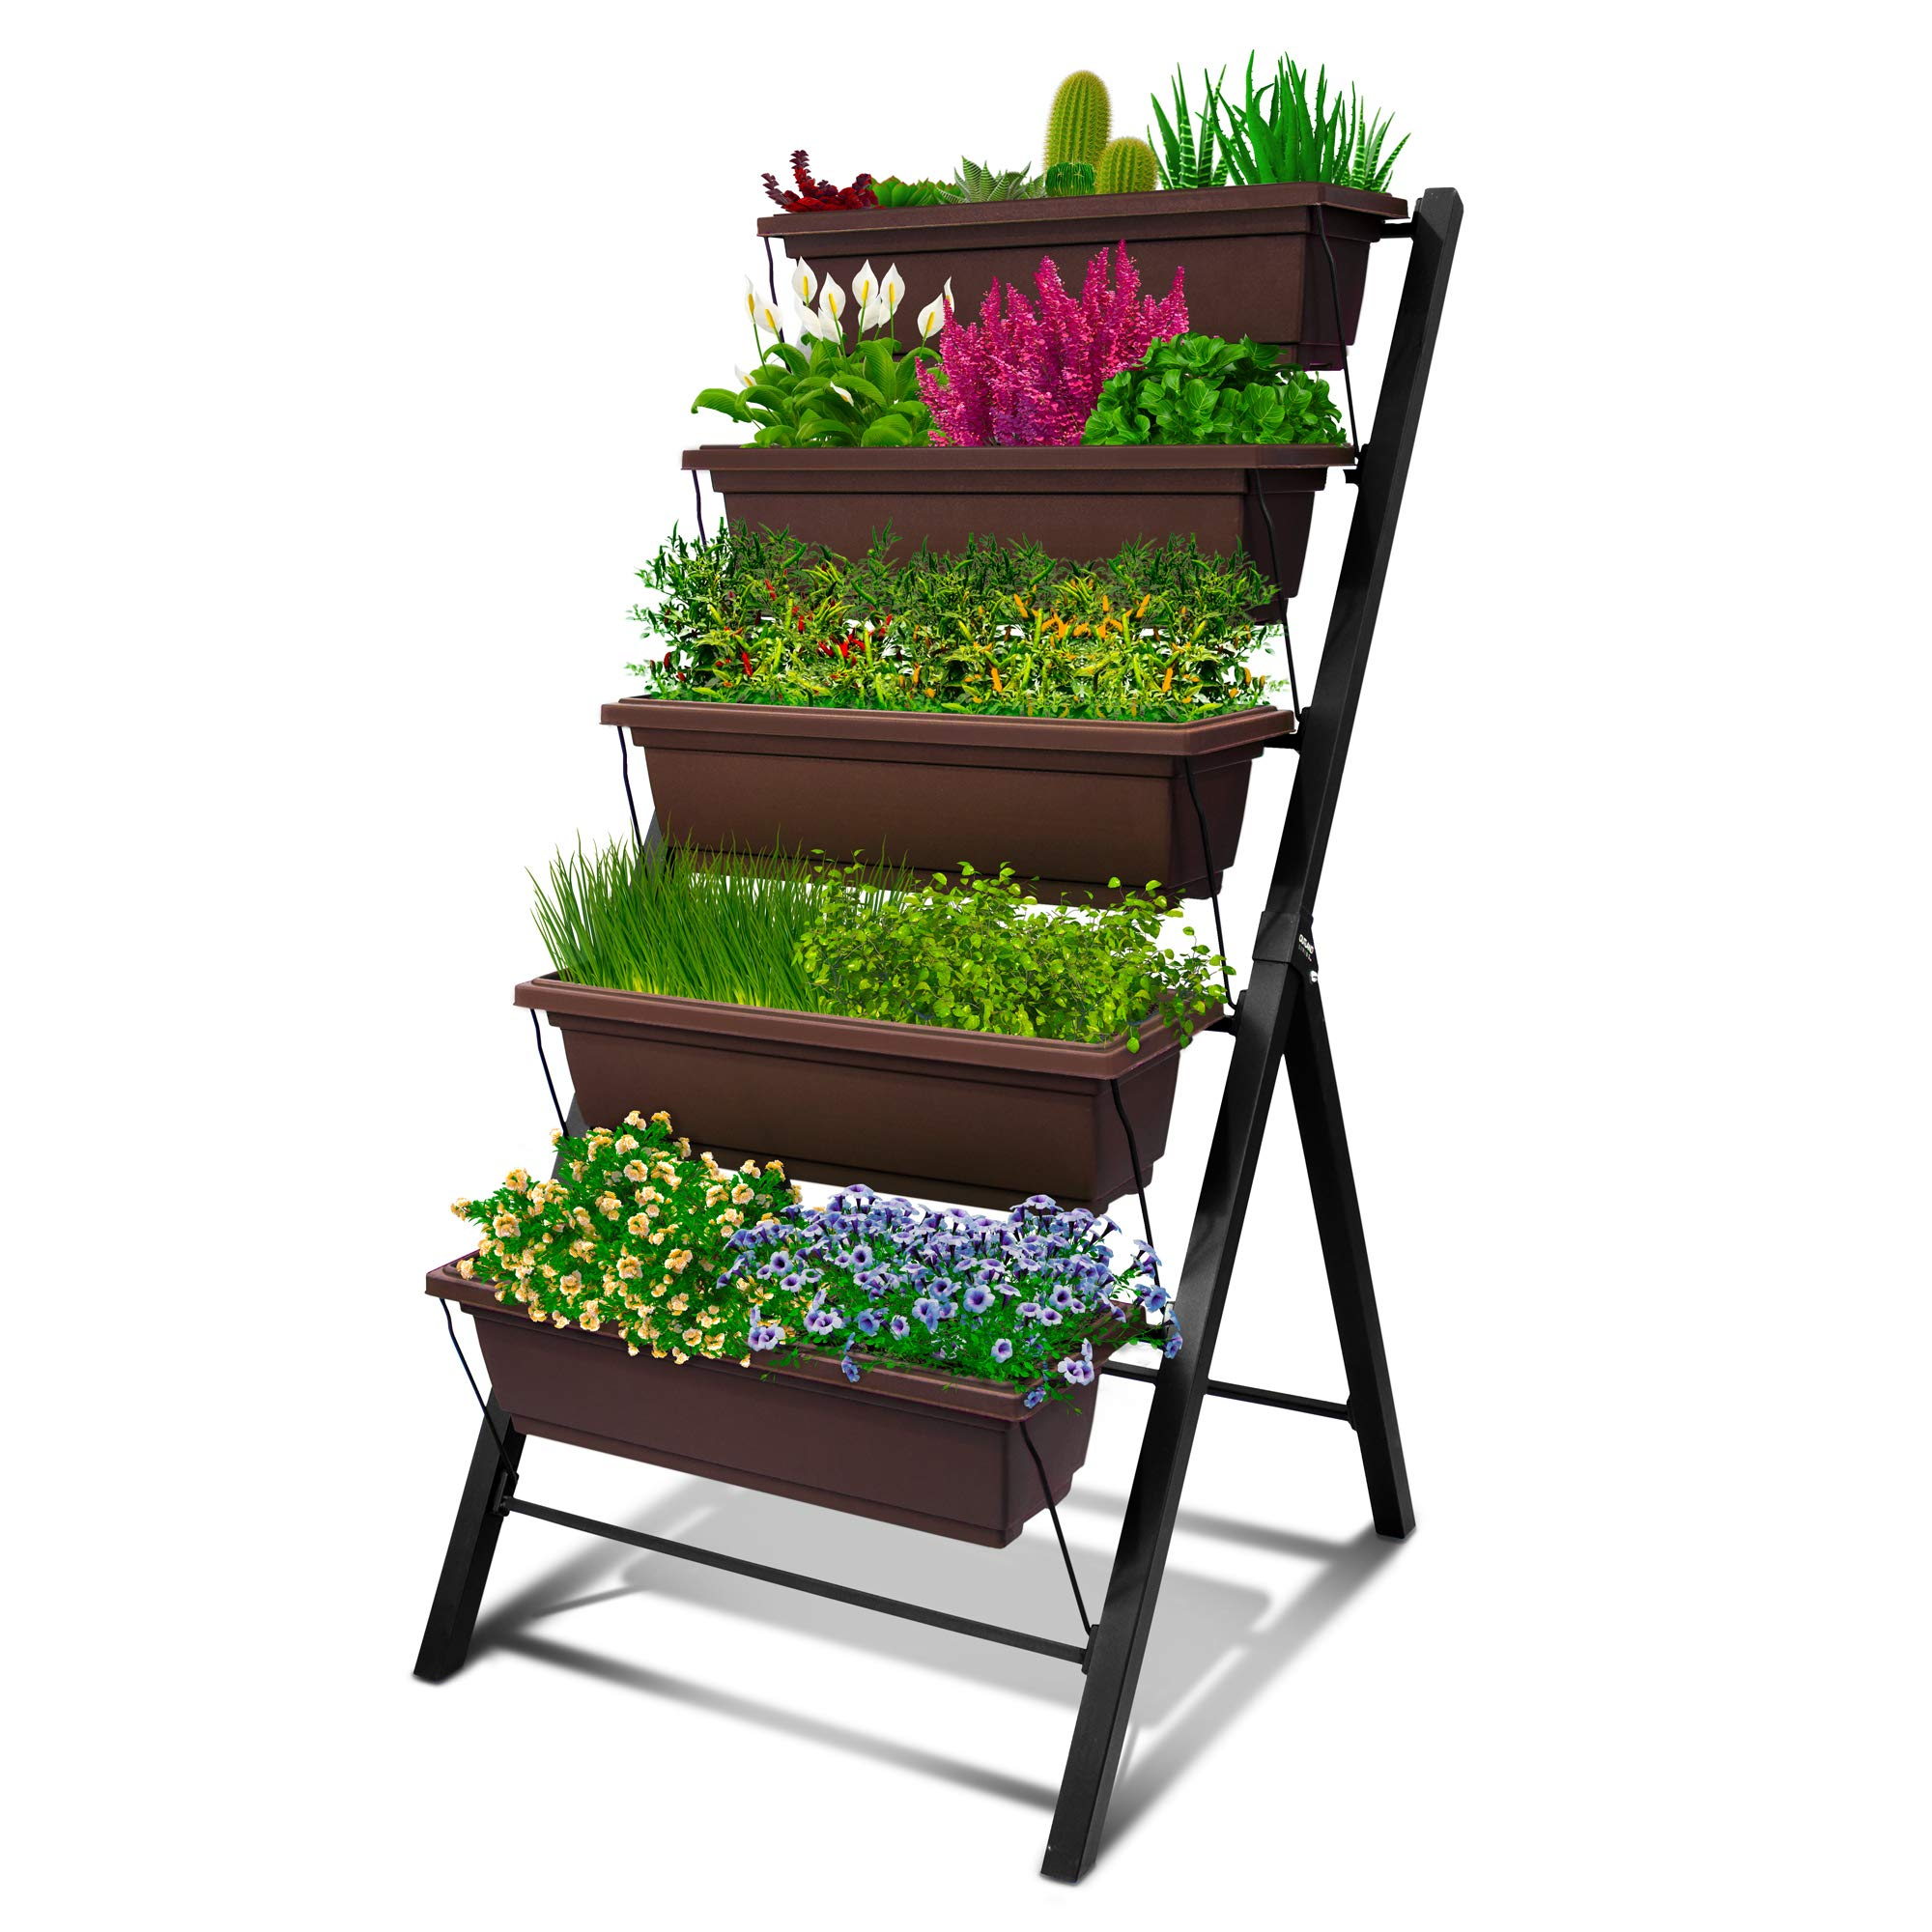 4ft Vertical Raised Garden Bed 5 Tier Food Safe Planter Box For Outdoor And Indoor Gardening Perfect To Grow Your Herb Vegetables Flowers On Your Patio Balcony Greenhouse Garden